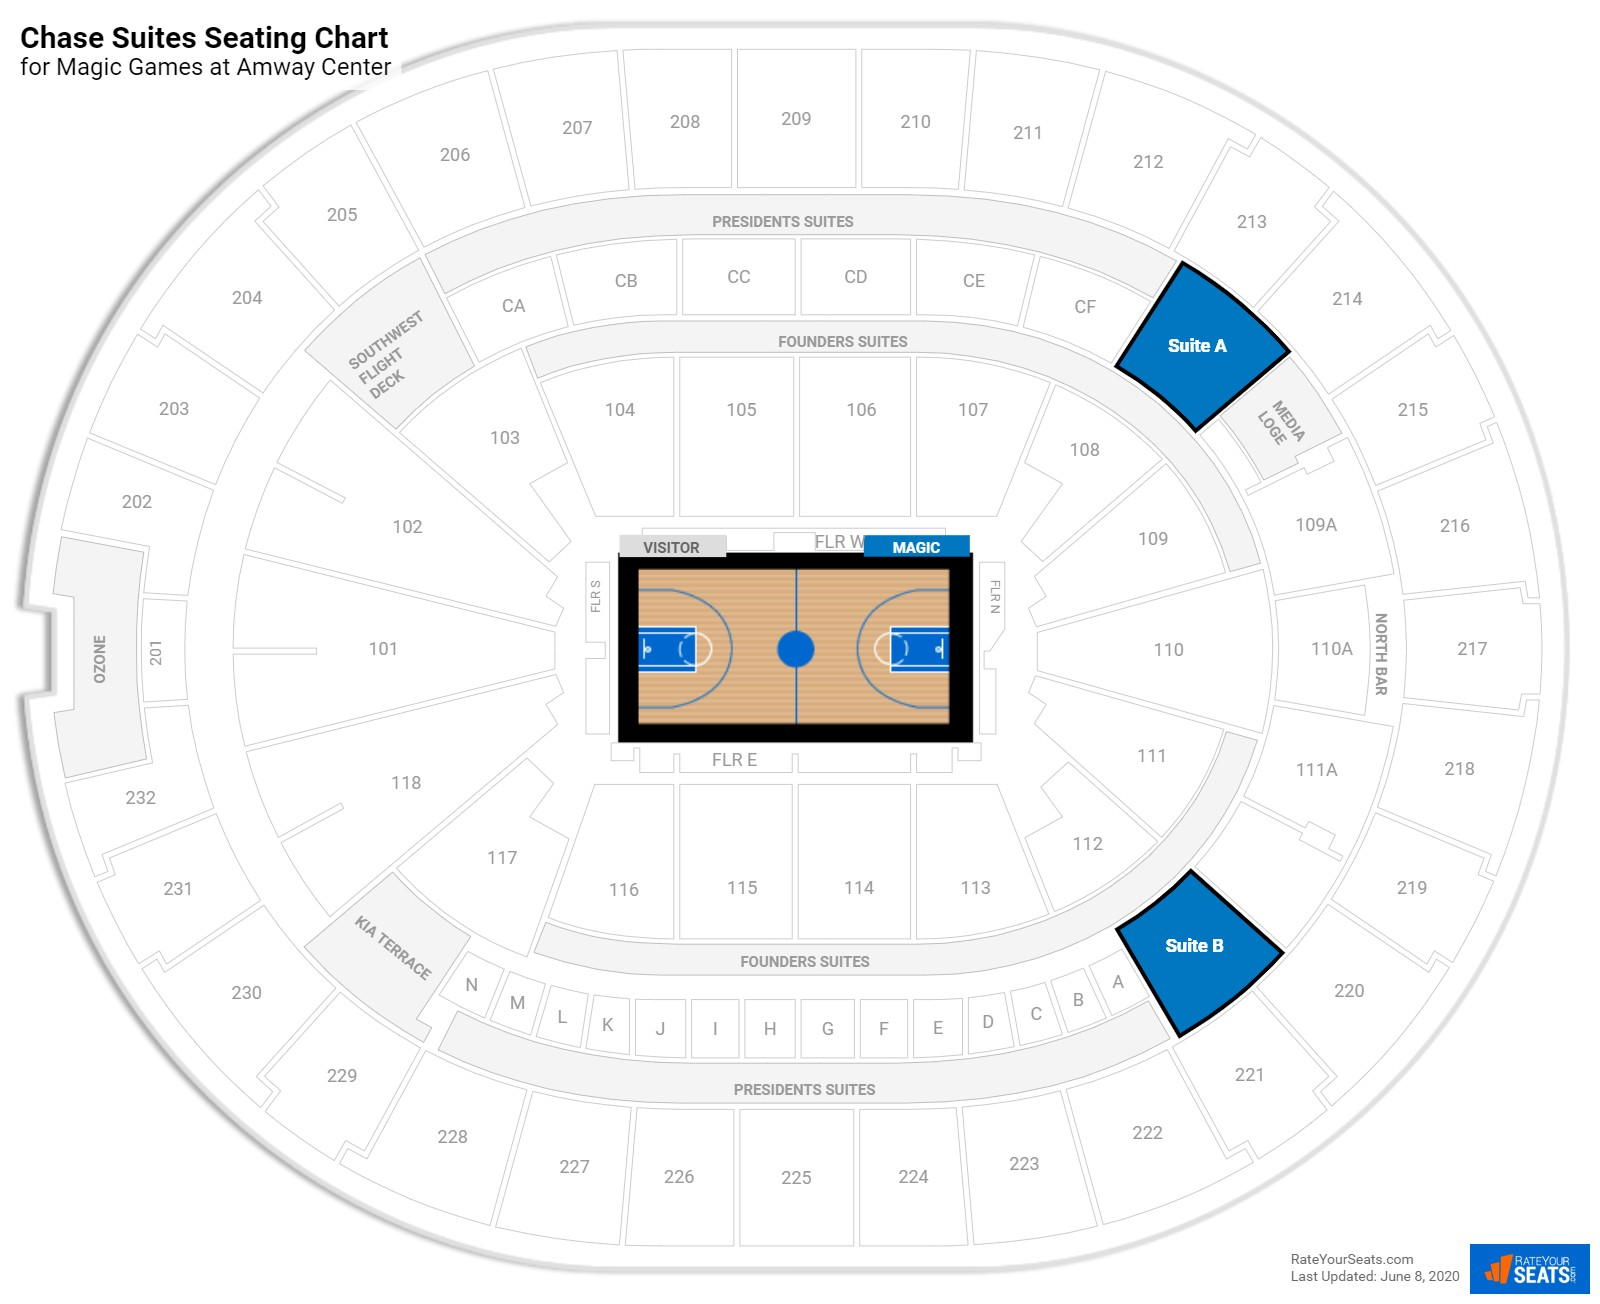 Amway Center Chase Suites seating chart